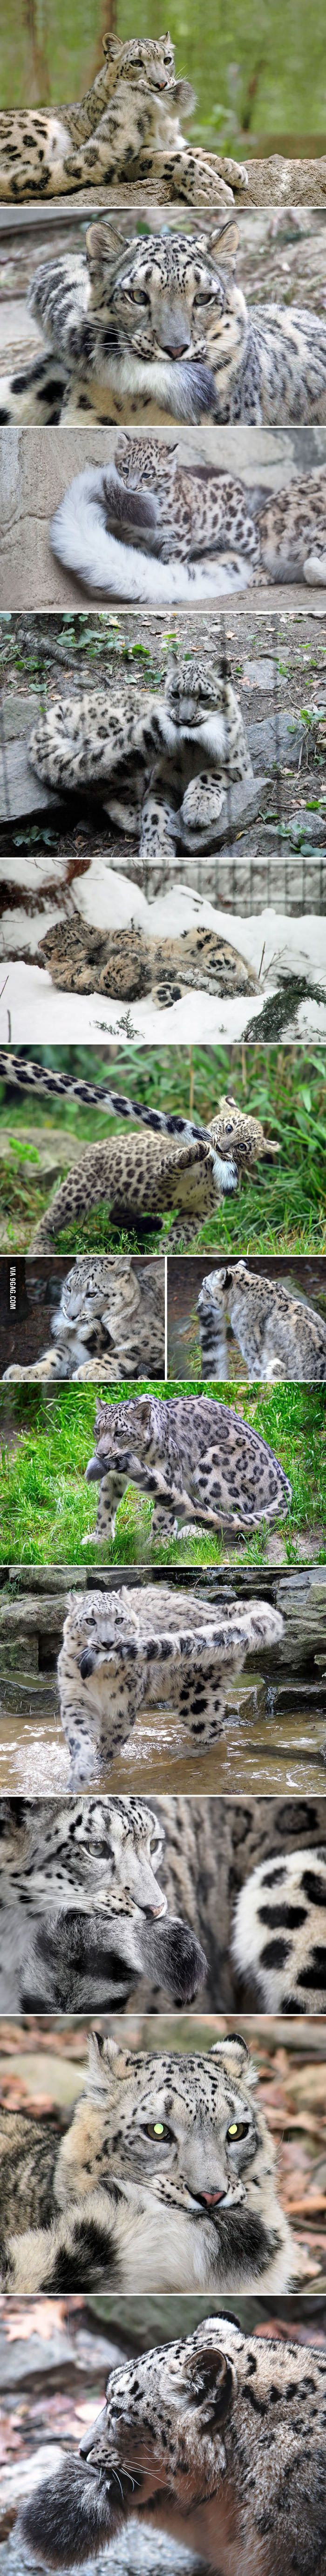 If you are having a bad day, just look at these pictures of snow leopards…